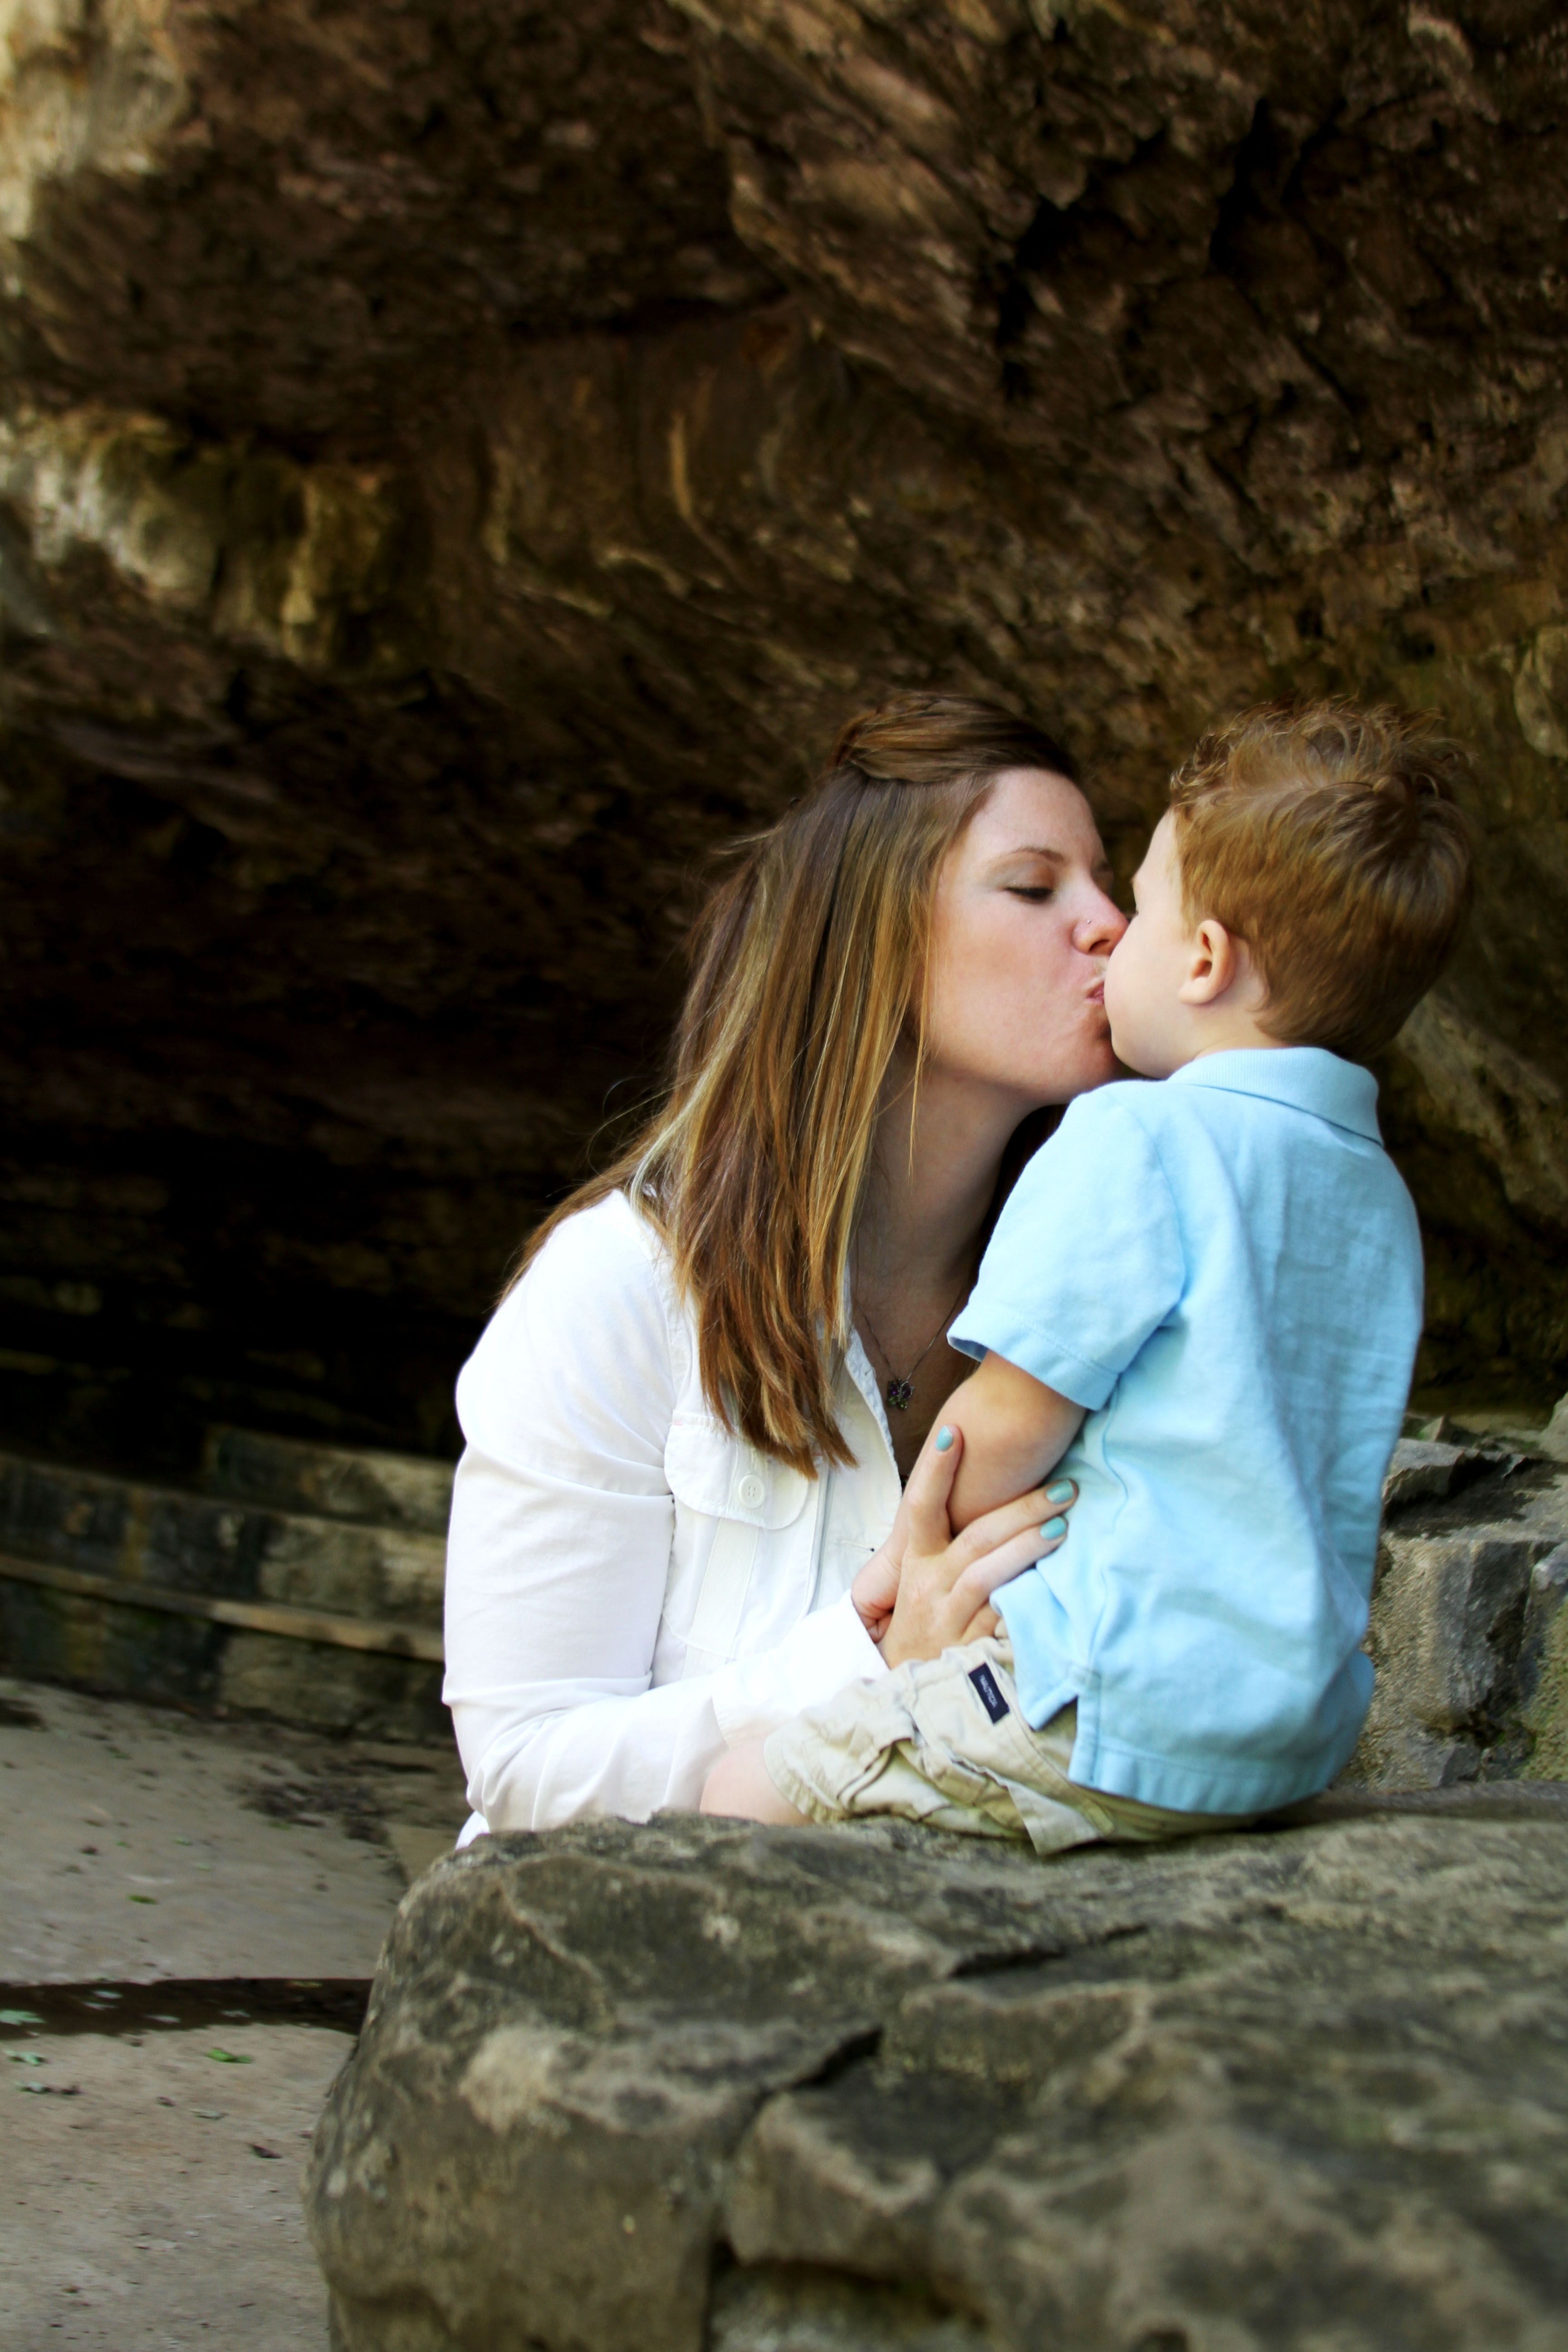 10 Gorgeous Mother And Son Photography Ideas mother son pose pic ideas pinterest mother son poses mother 1 2021